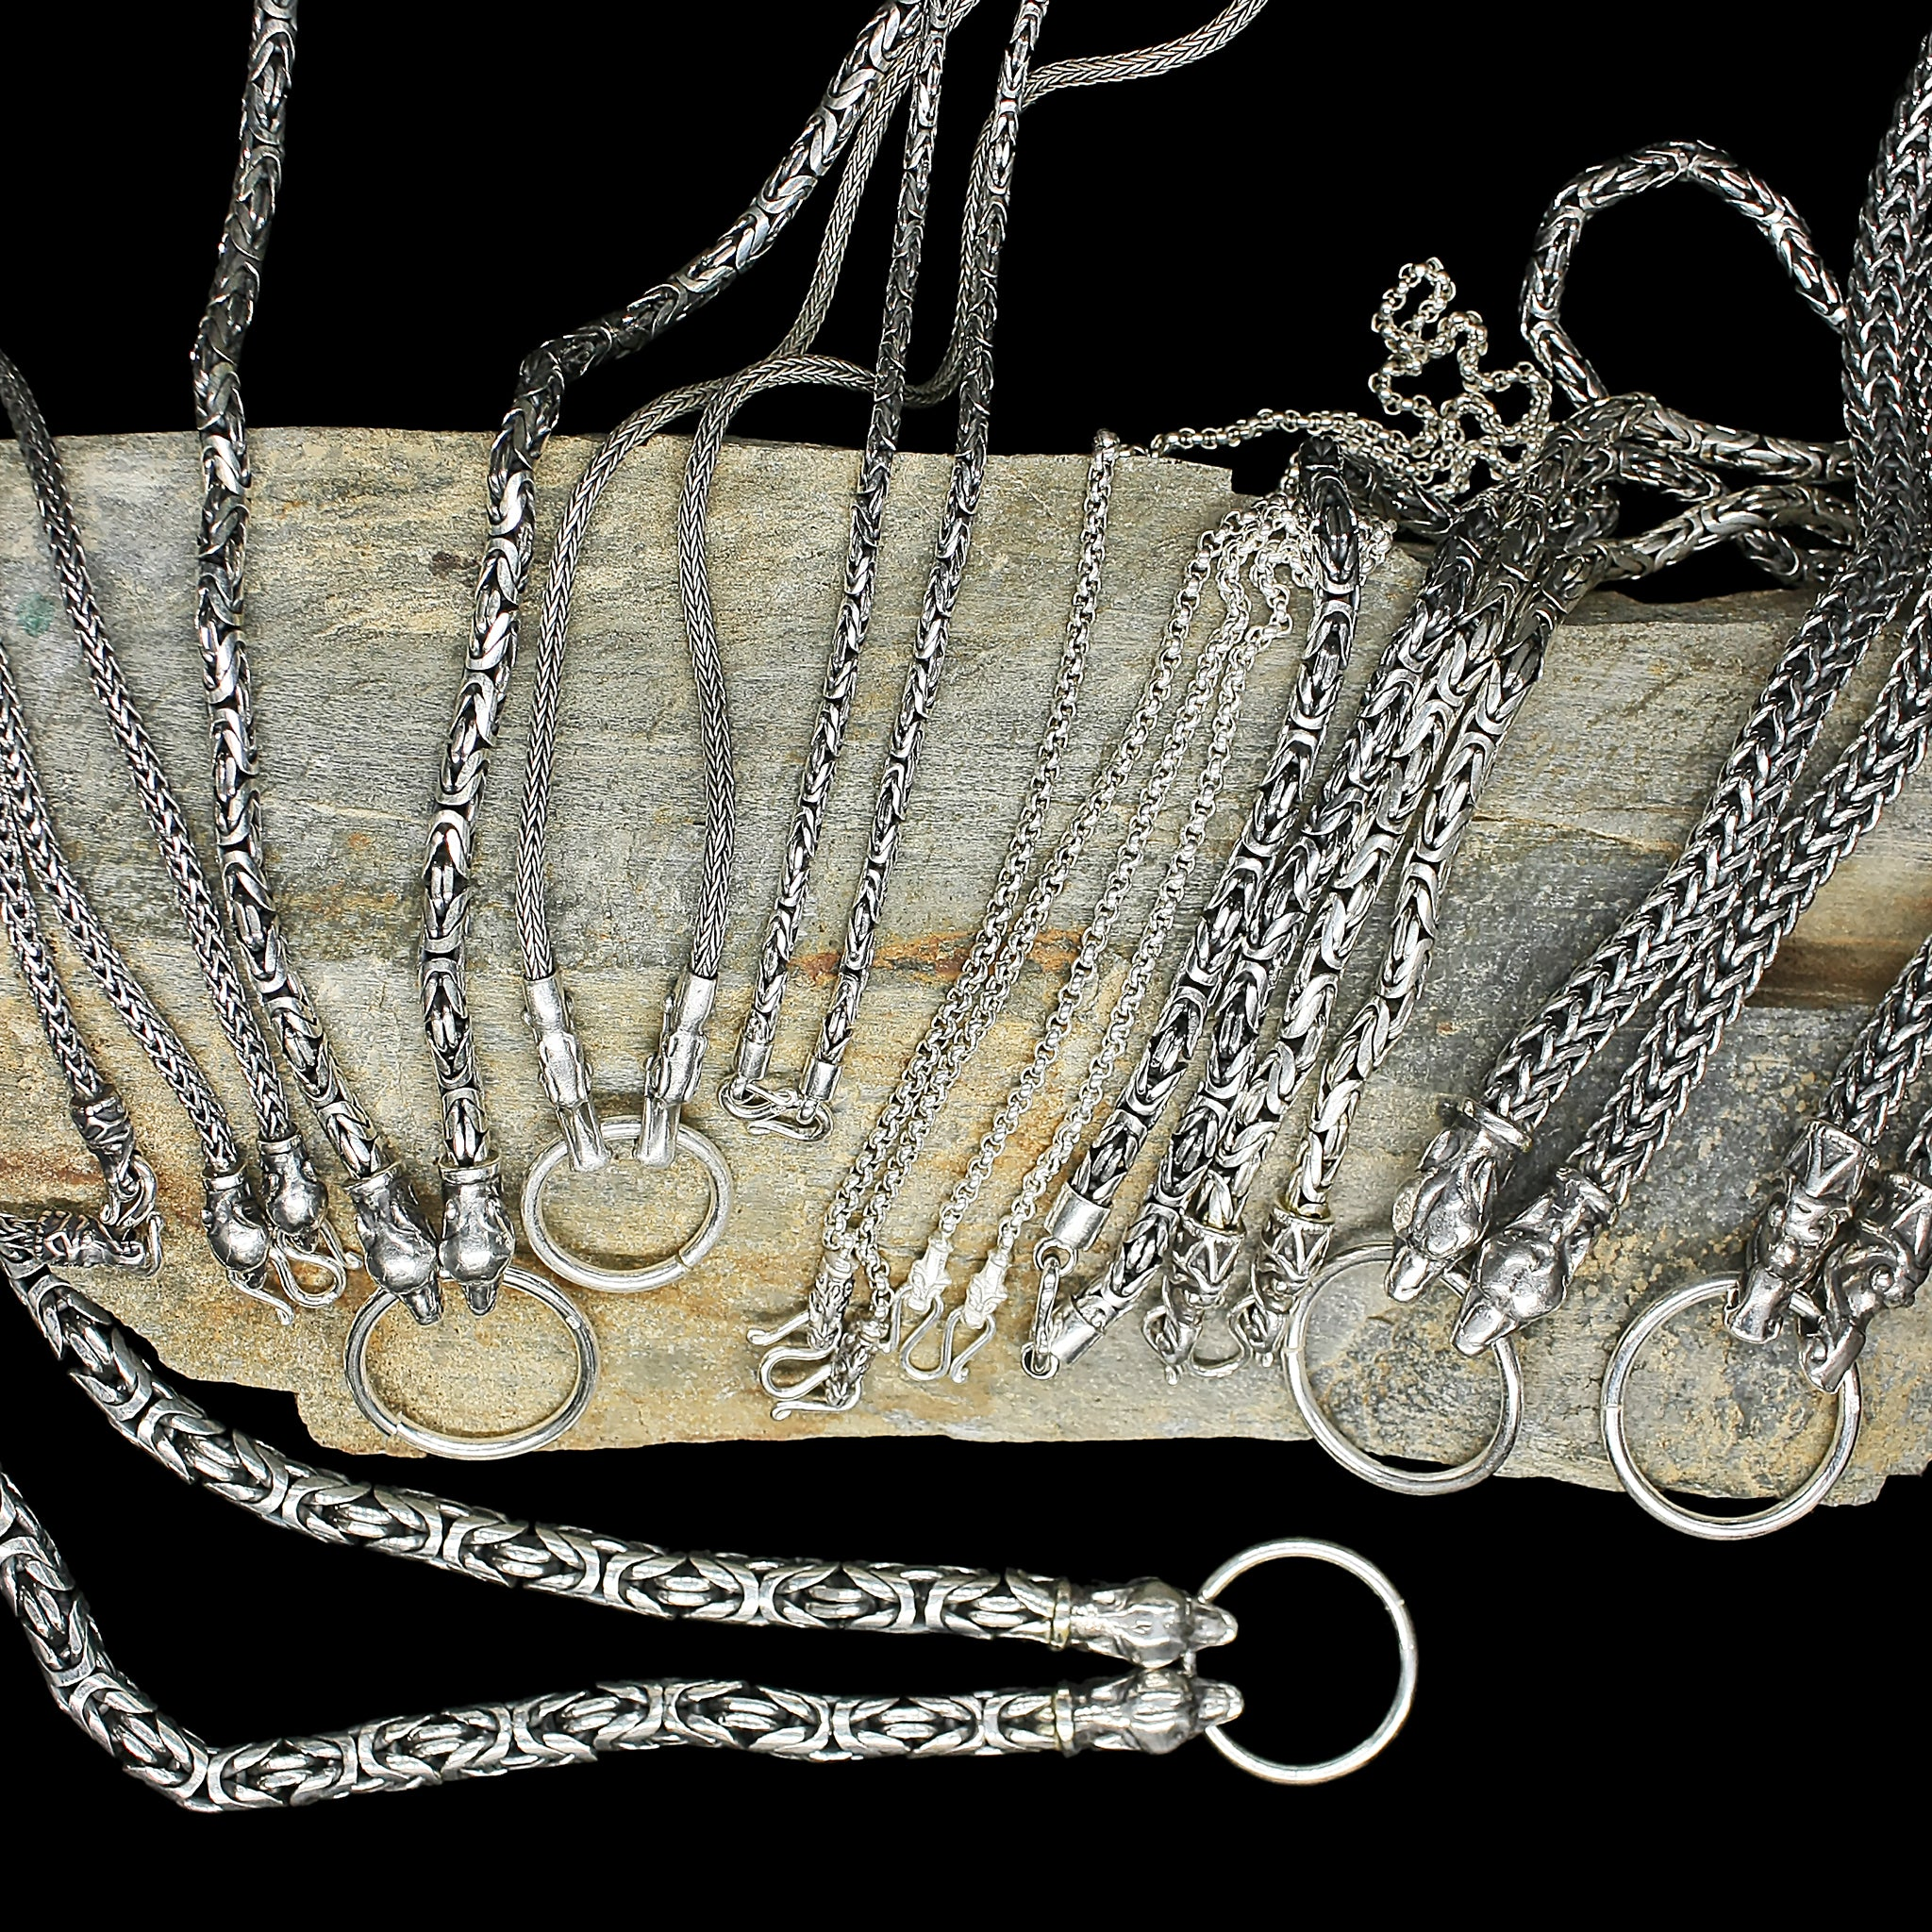 Silver Viking Necklaces